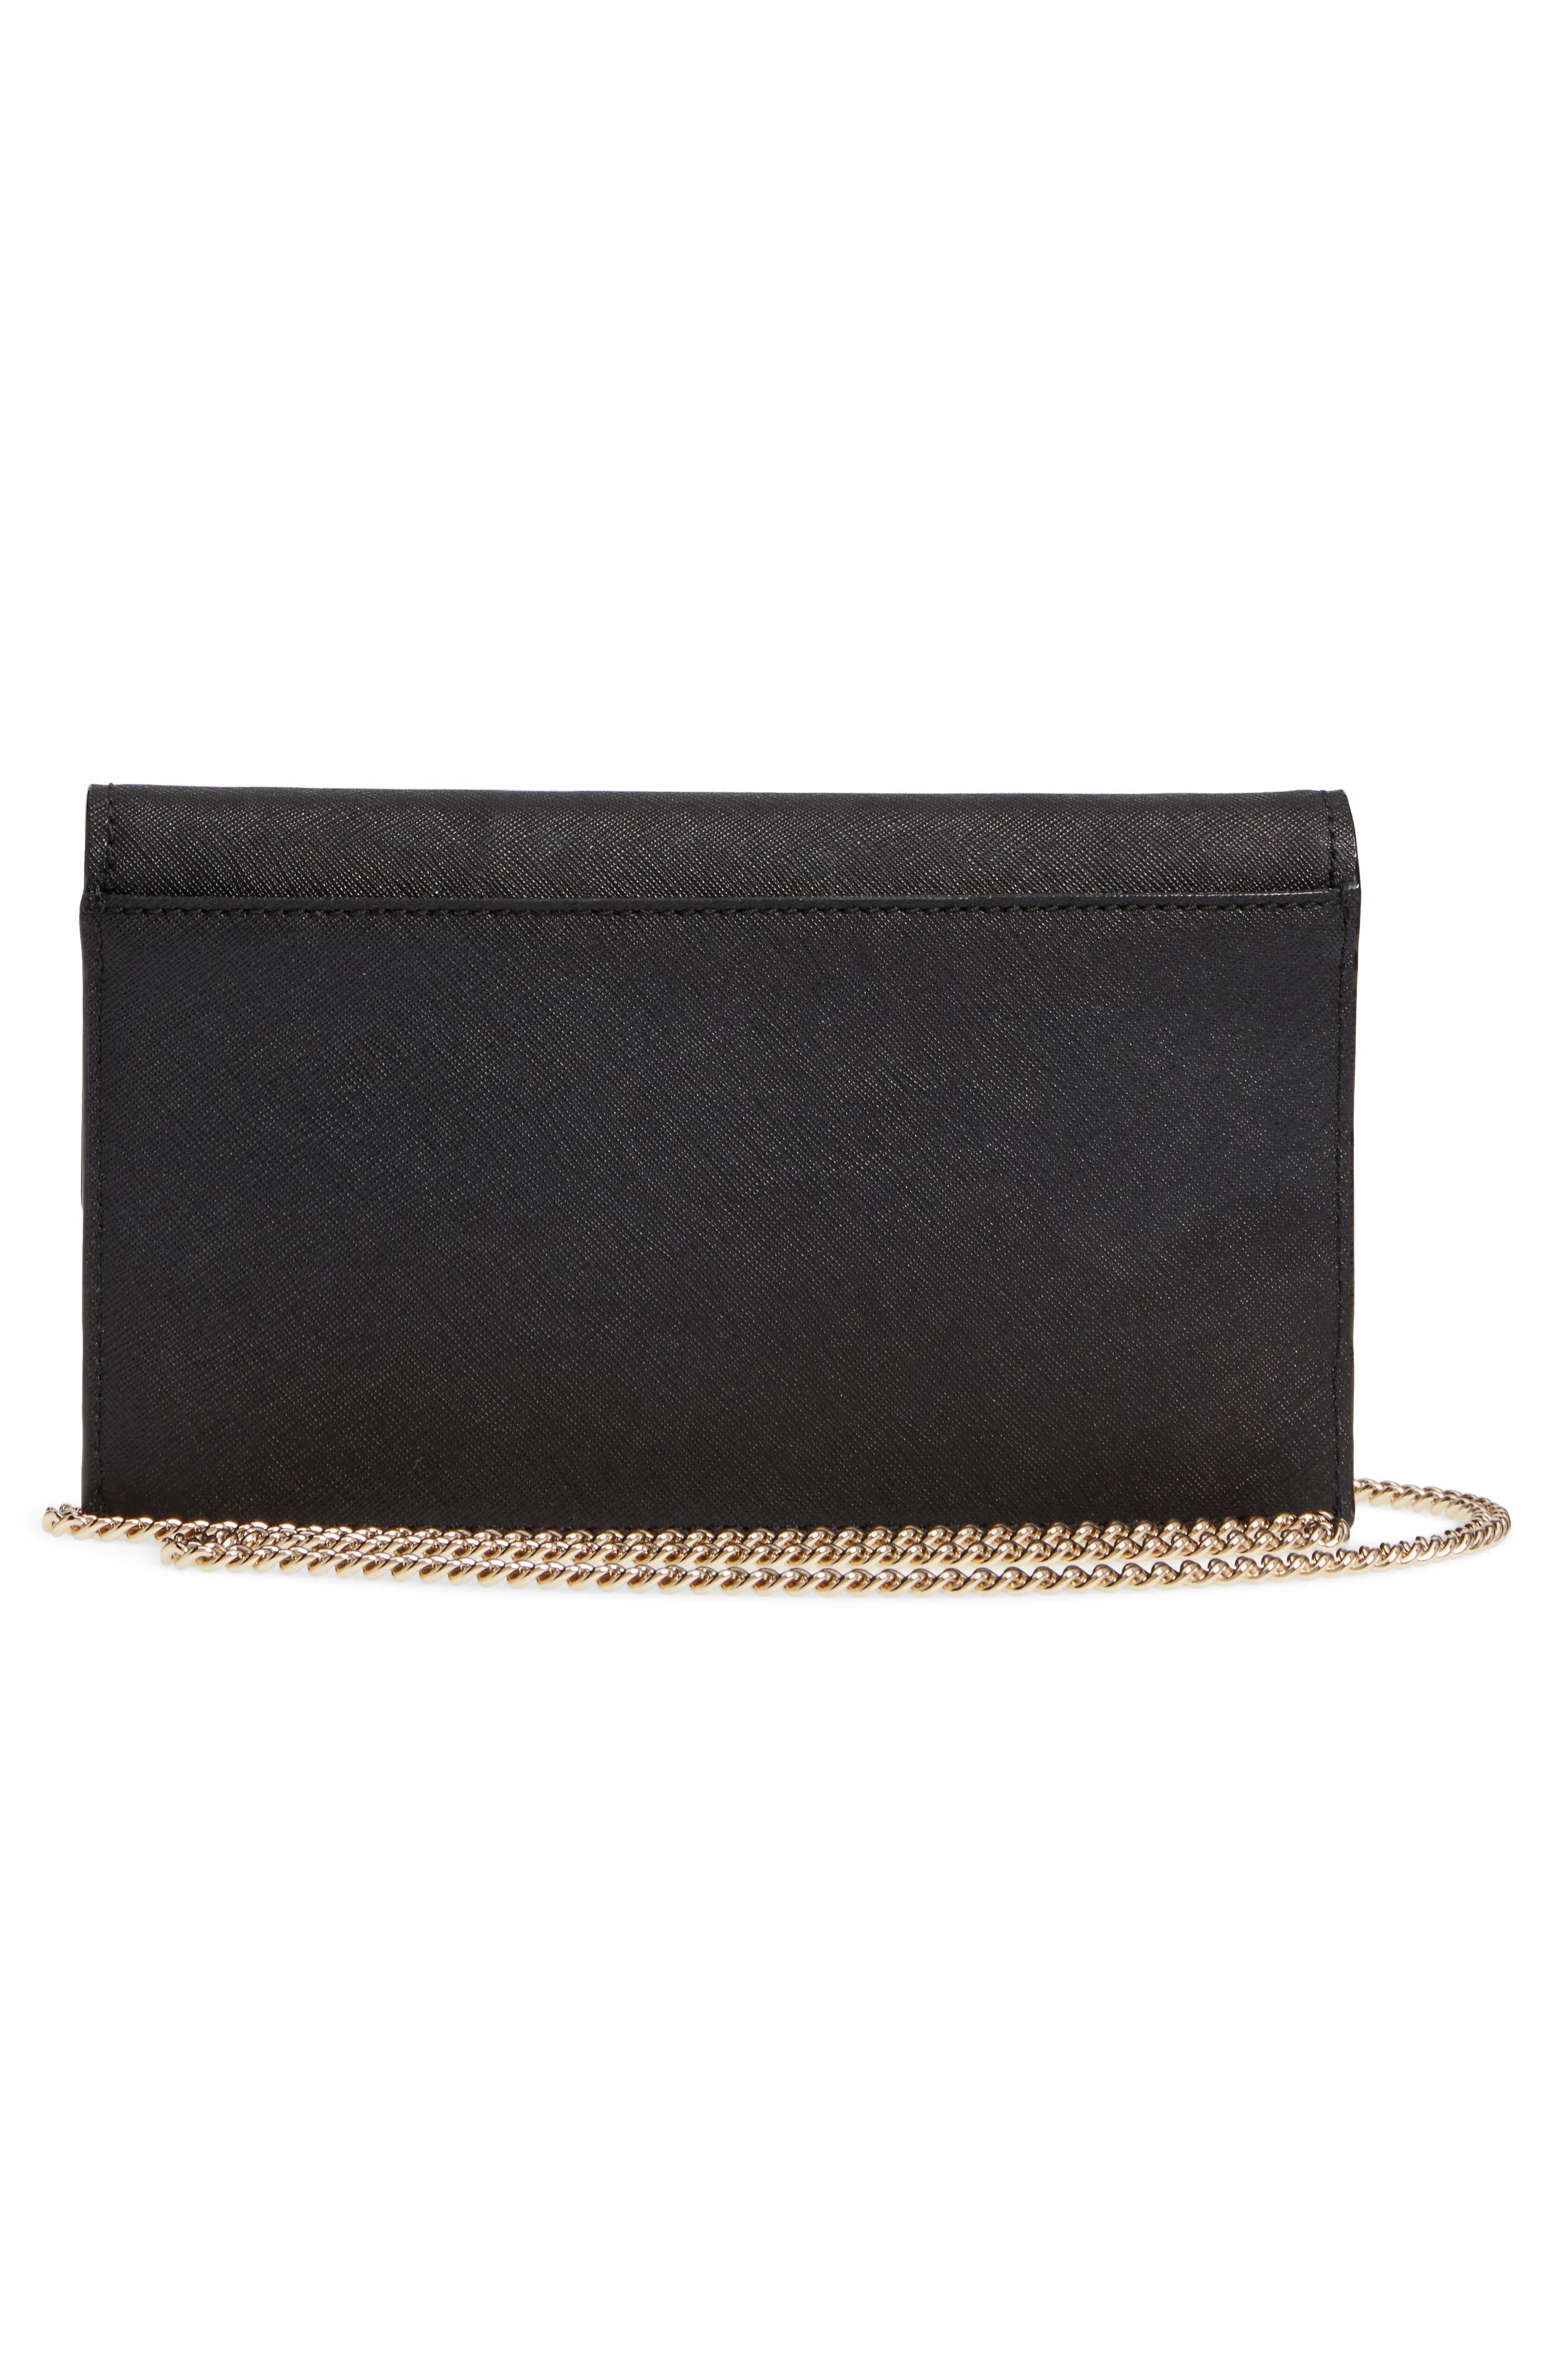 cameron street - brennan leather wallet & card case,                             Alternate thumbnail 3, color,                             Black